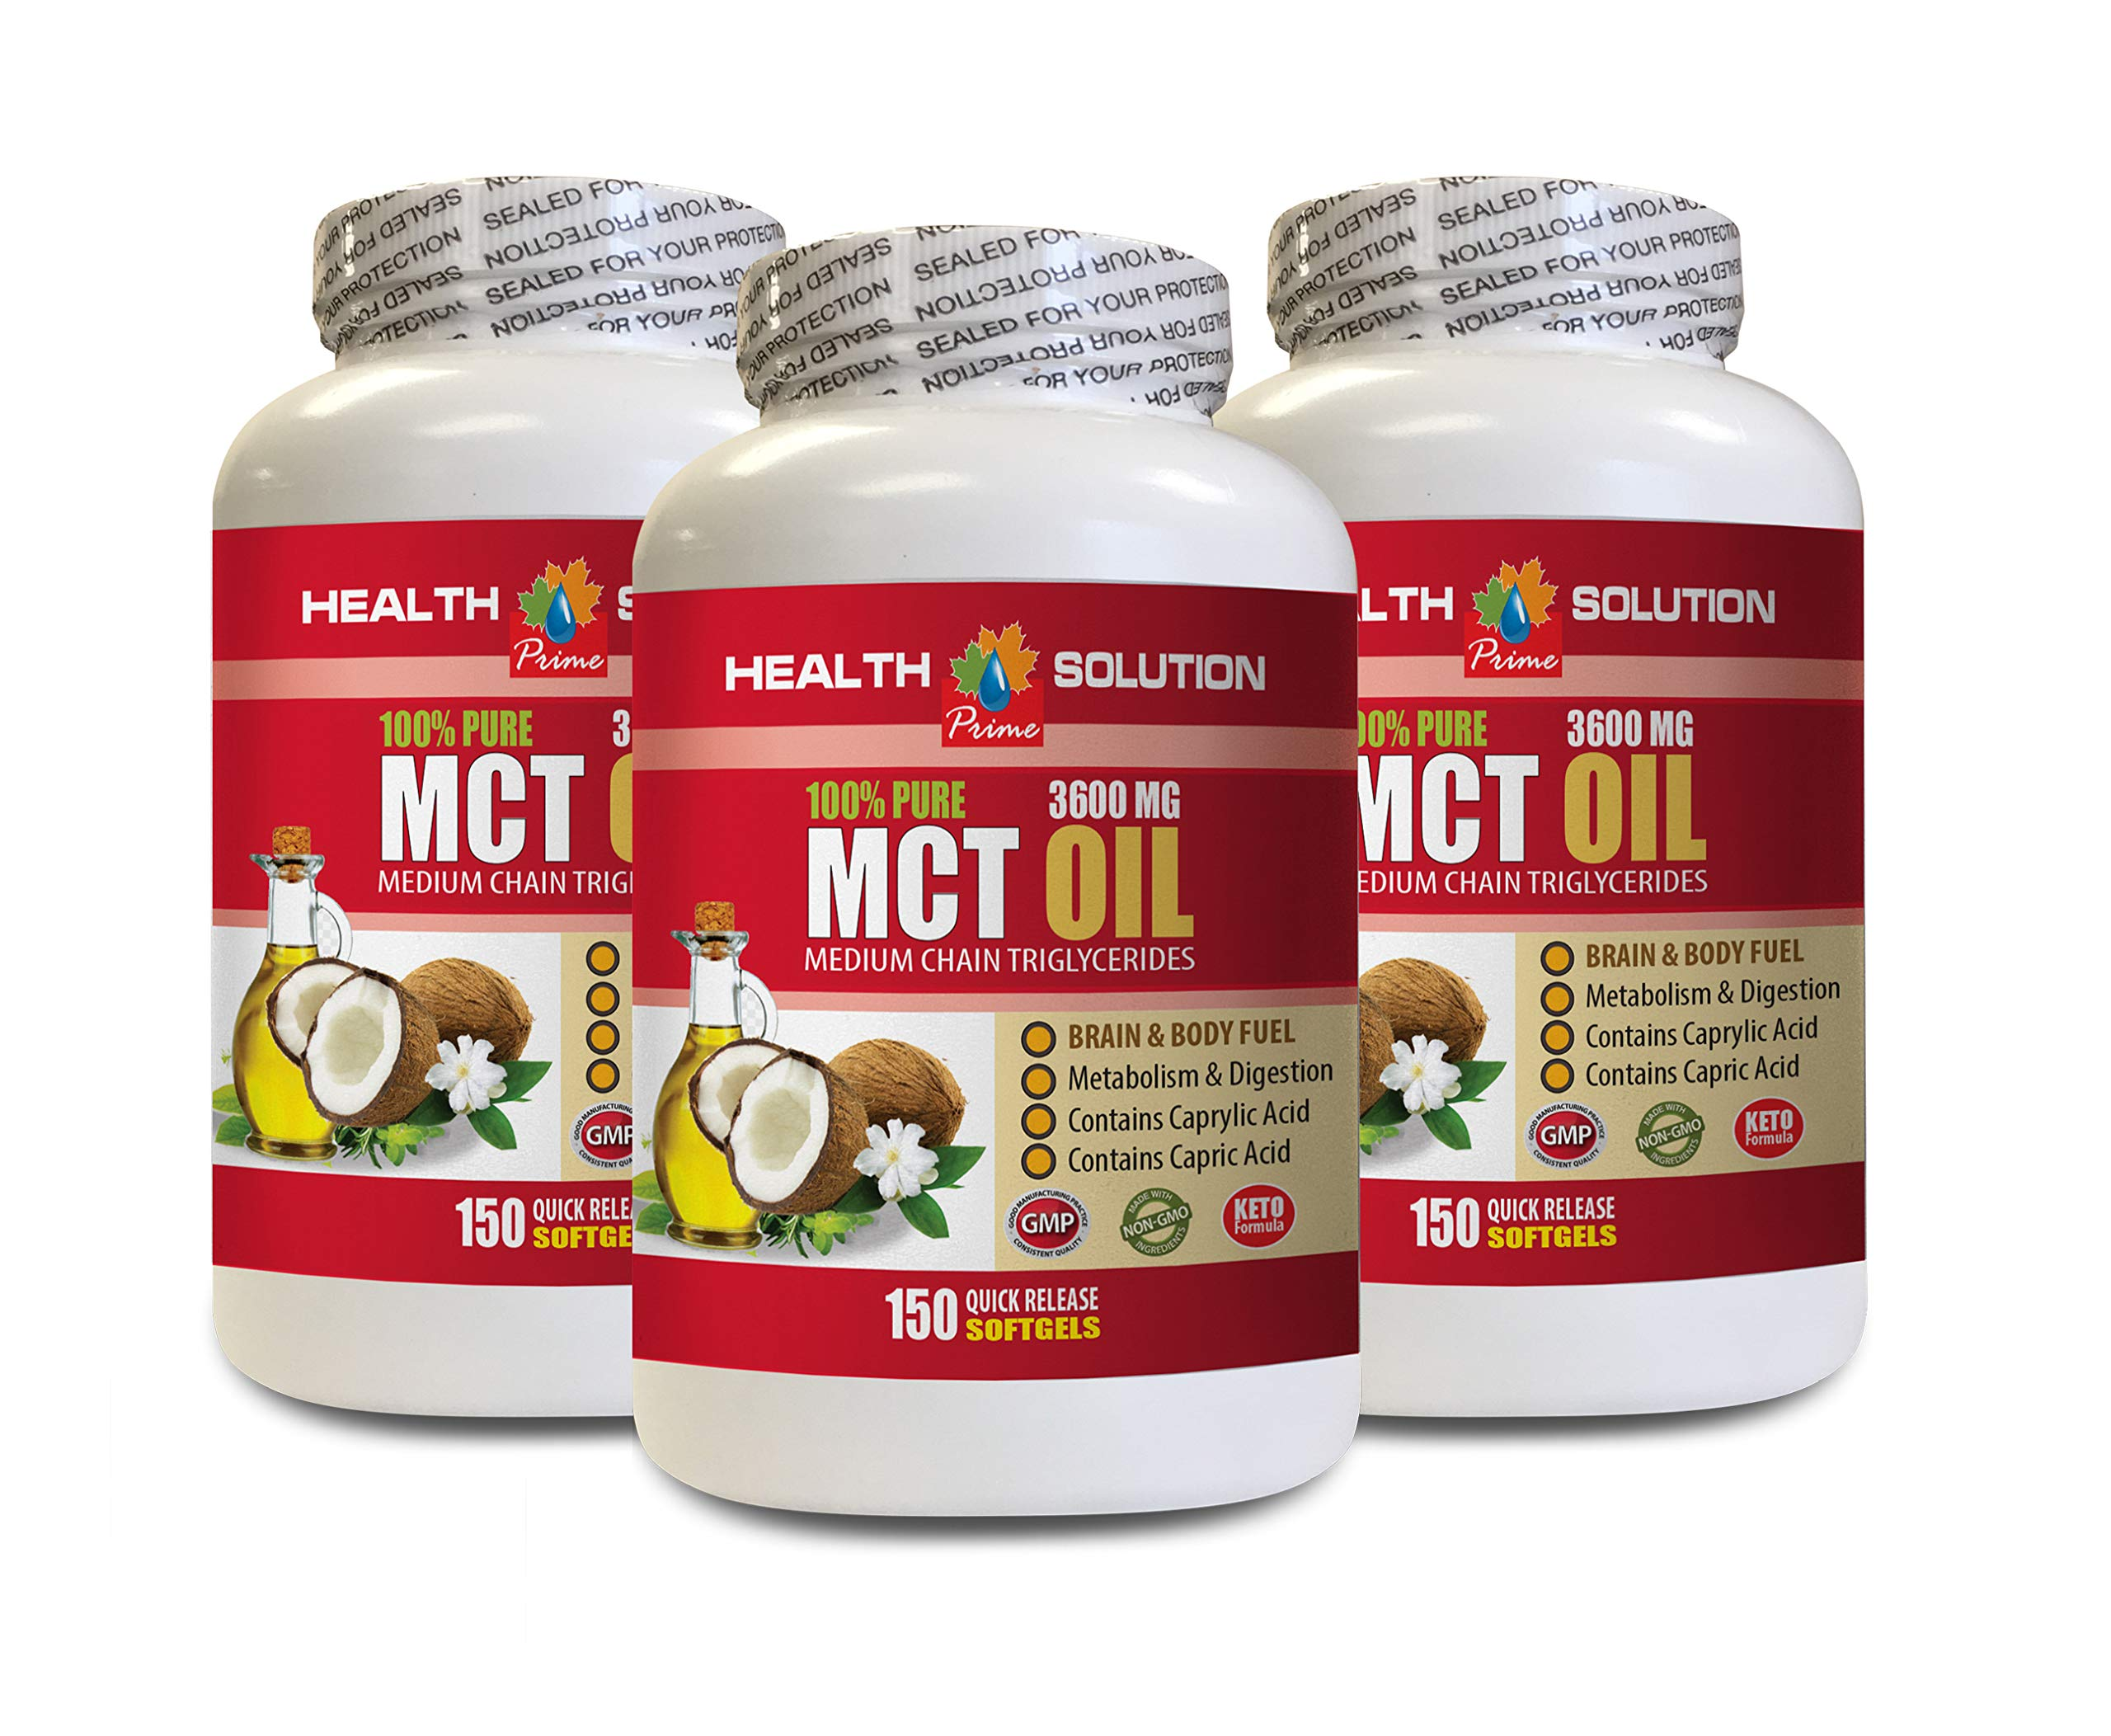 Metabolism Booster for Weight Loss for Women - MCT Oil 3600MG - 100% Pure - mct Oil Capsules for Weight Loss - 3 Bottles 450 Softgels by Health Solution Prime